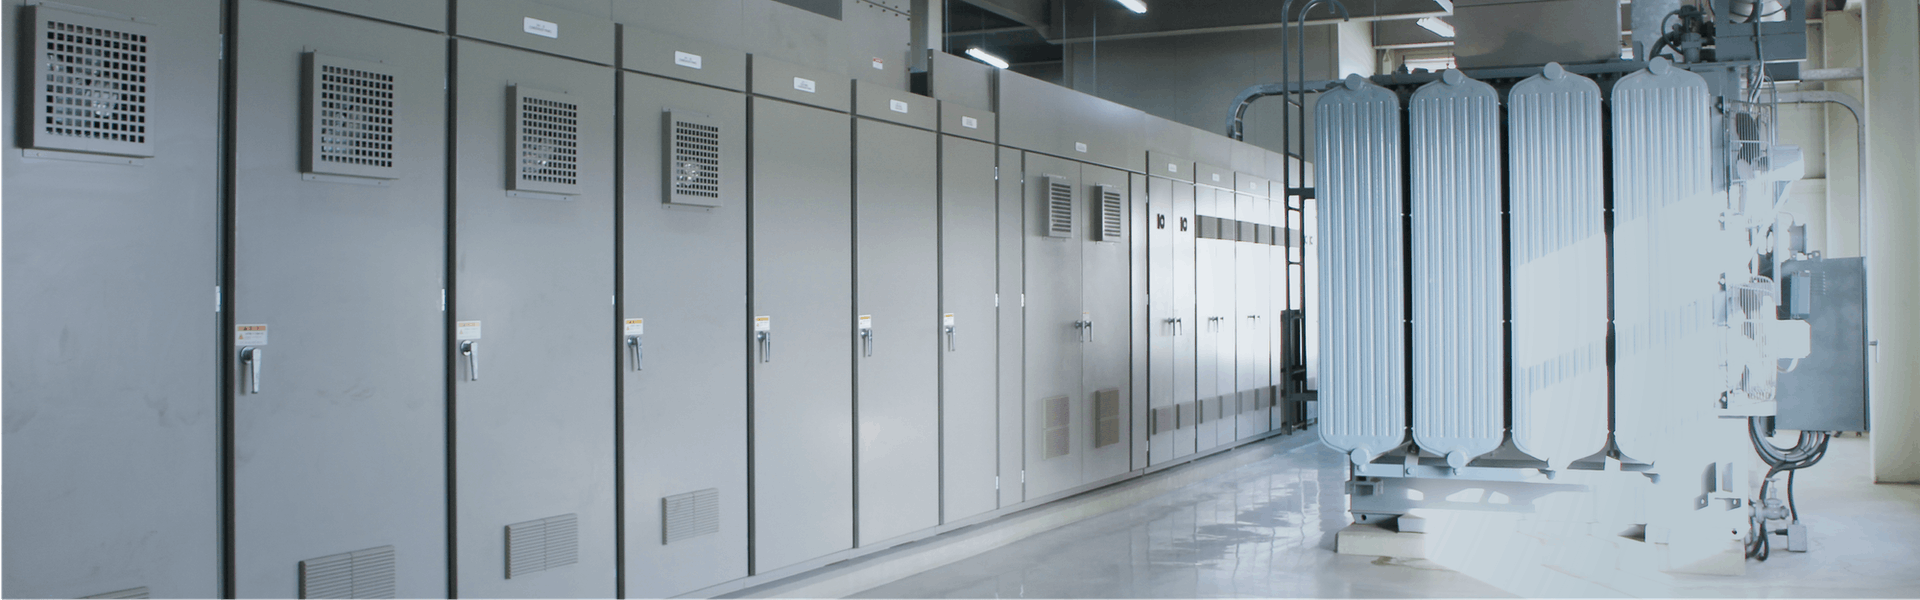 Lithium & Lead Acid Battery Manufacturers/Suppliers | Discover Battery